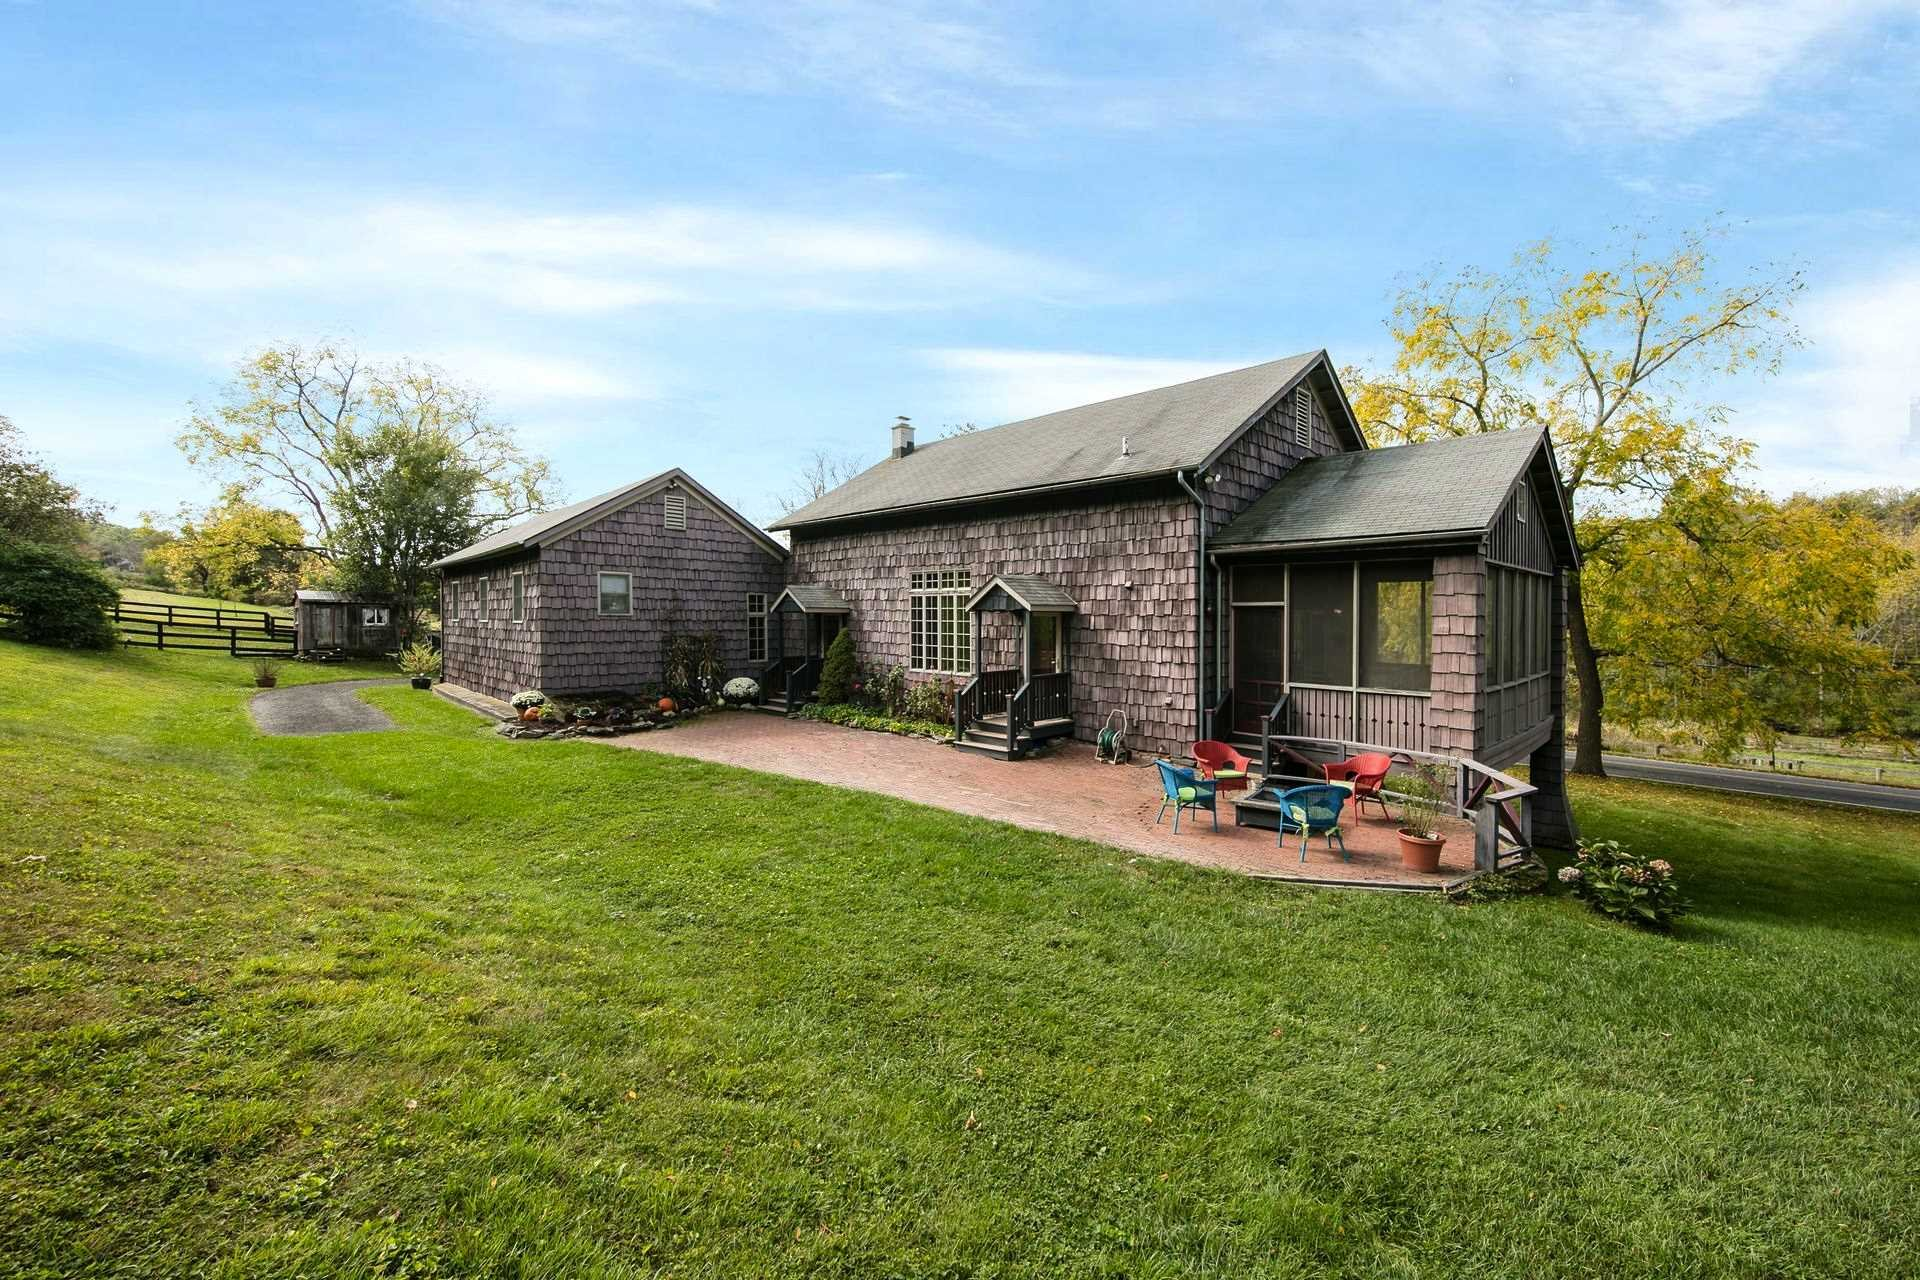 Single Family Home for Sale at 2850 SALT POINT TURNPIKE 2850 SALT POINT TURNPIKE Stanfordville, New York 12514 United States